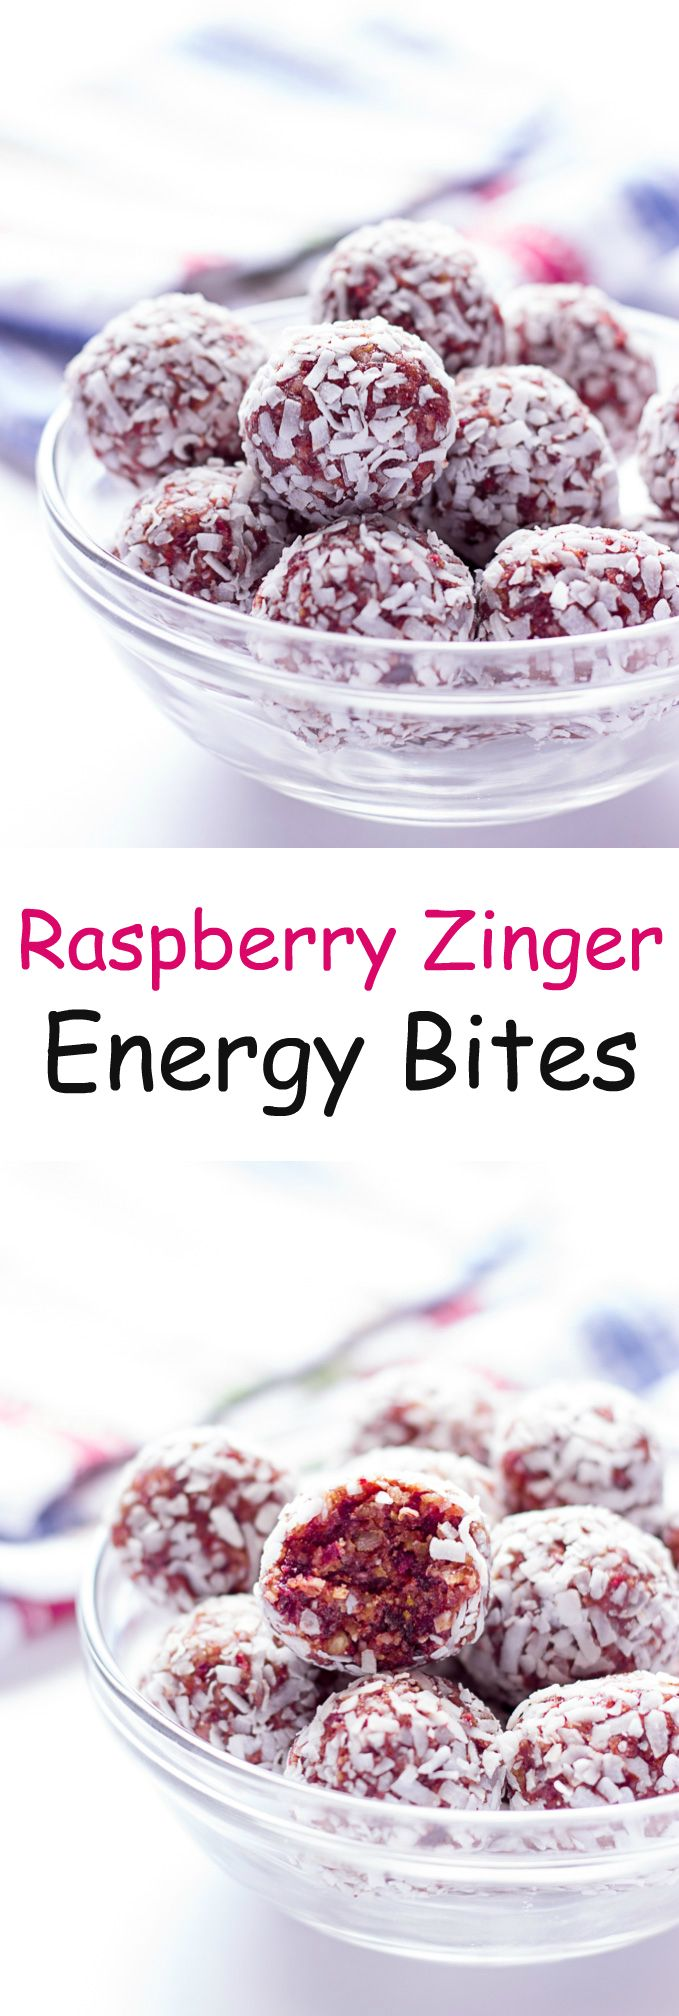 Pinterest Raspberry Recipe Image